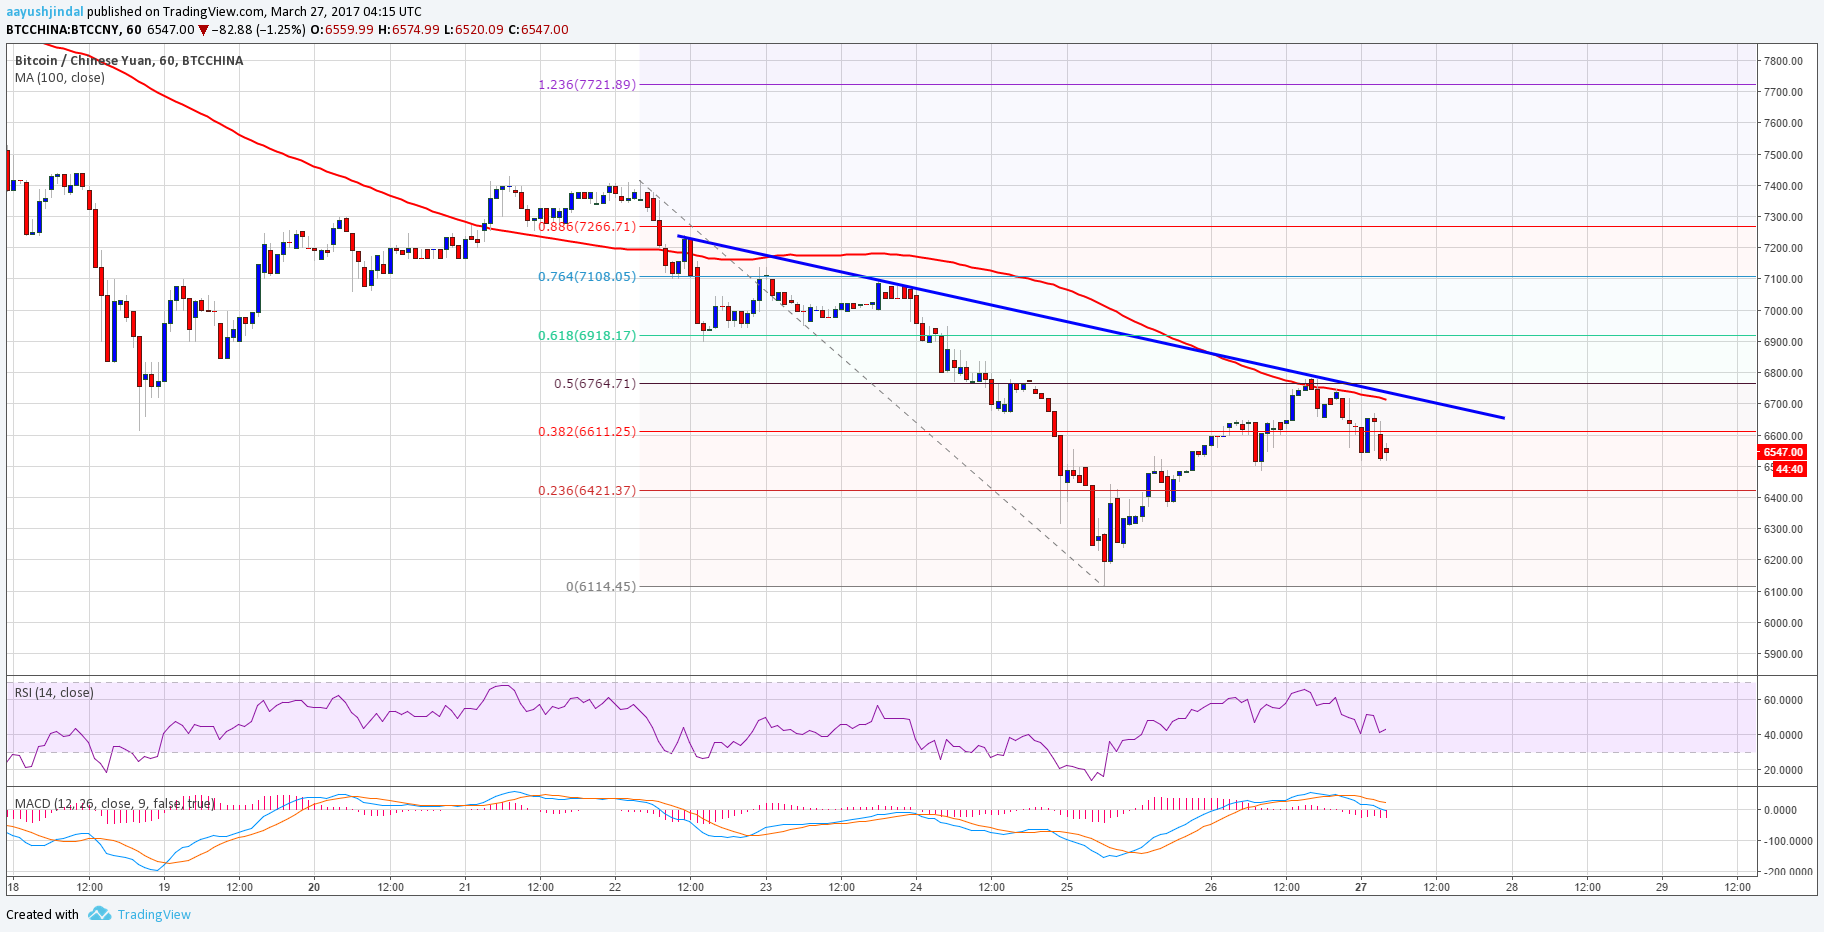 Bitcoin Price Analysis: BTC/CNY